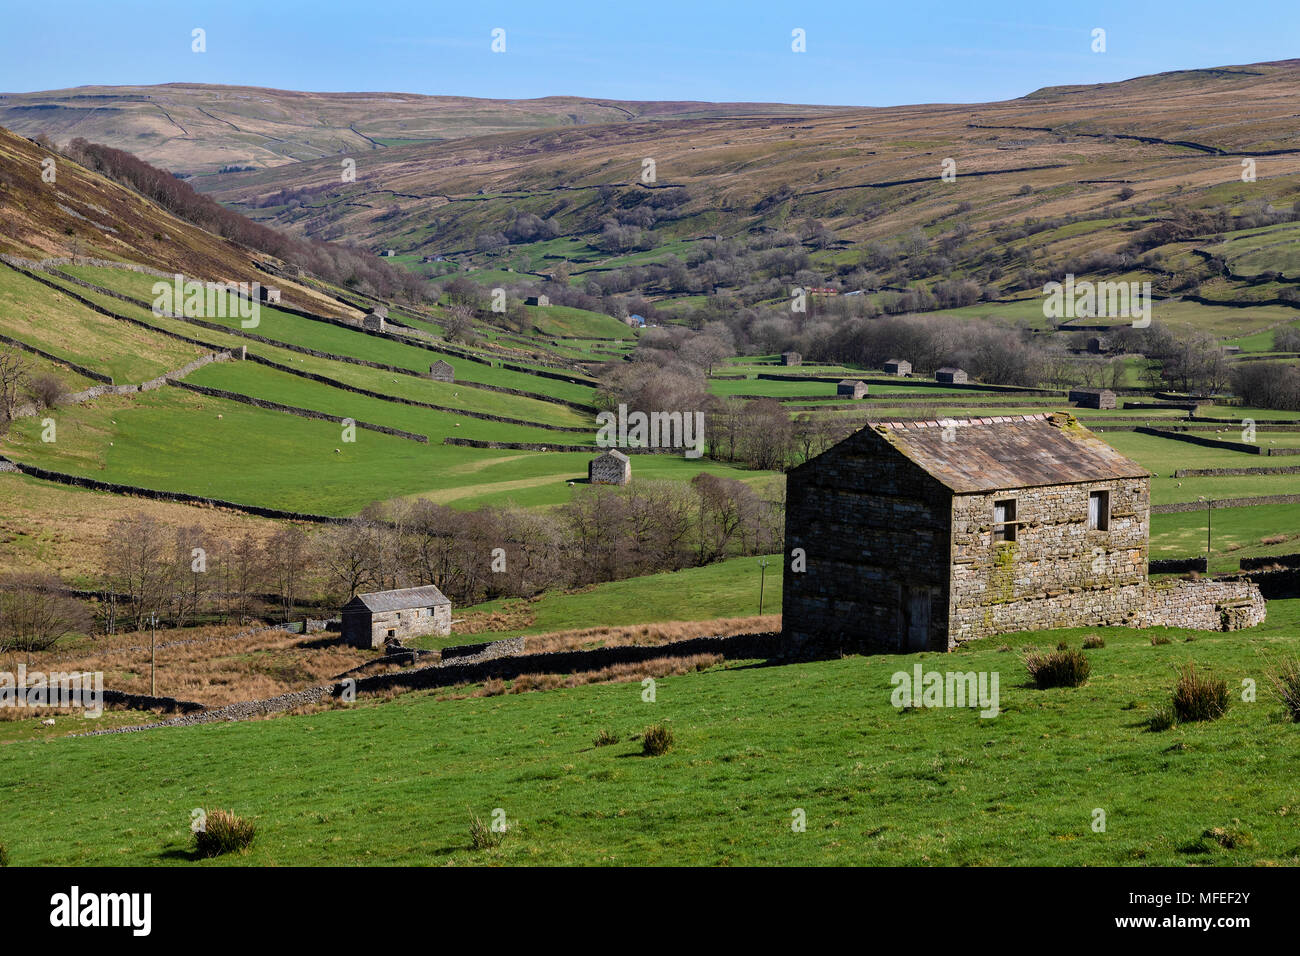 Old stone barns in Wenslydale in the Yorkshire Dales National Park in northeast England. - Stock Image